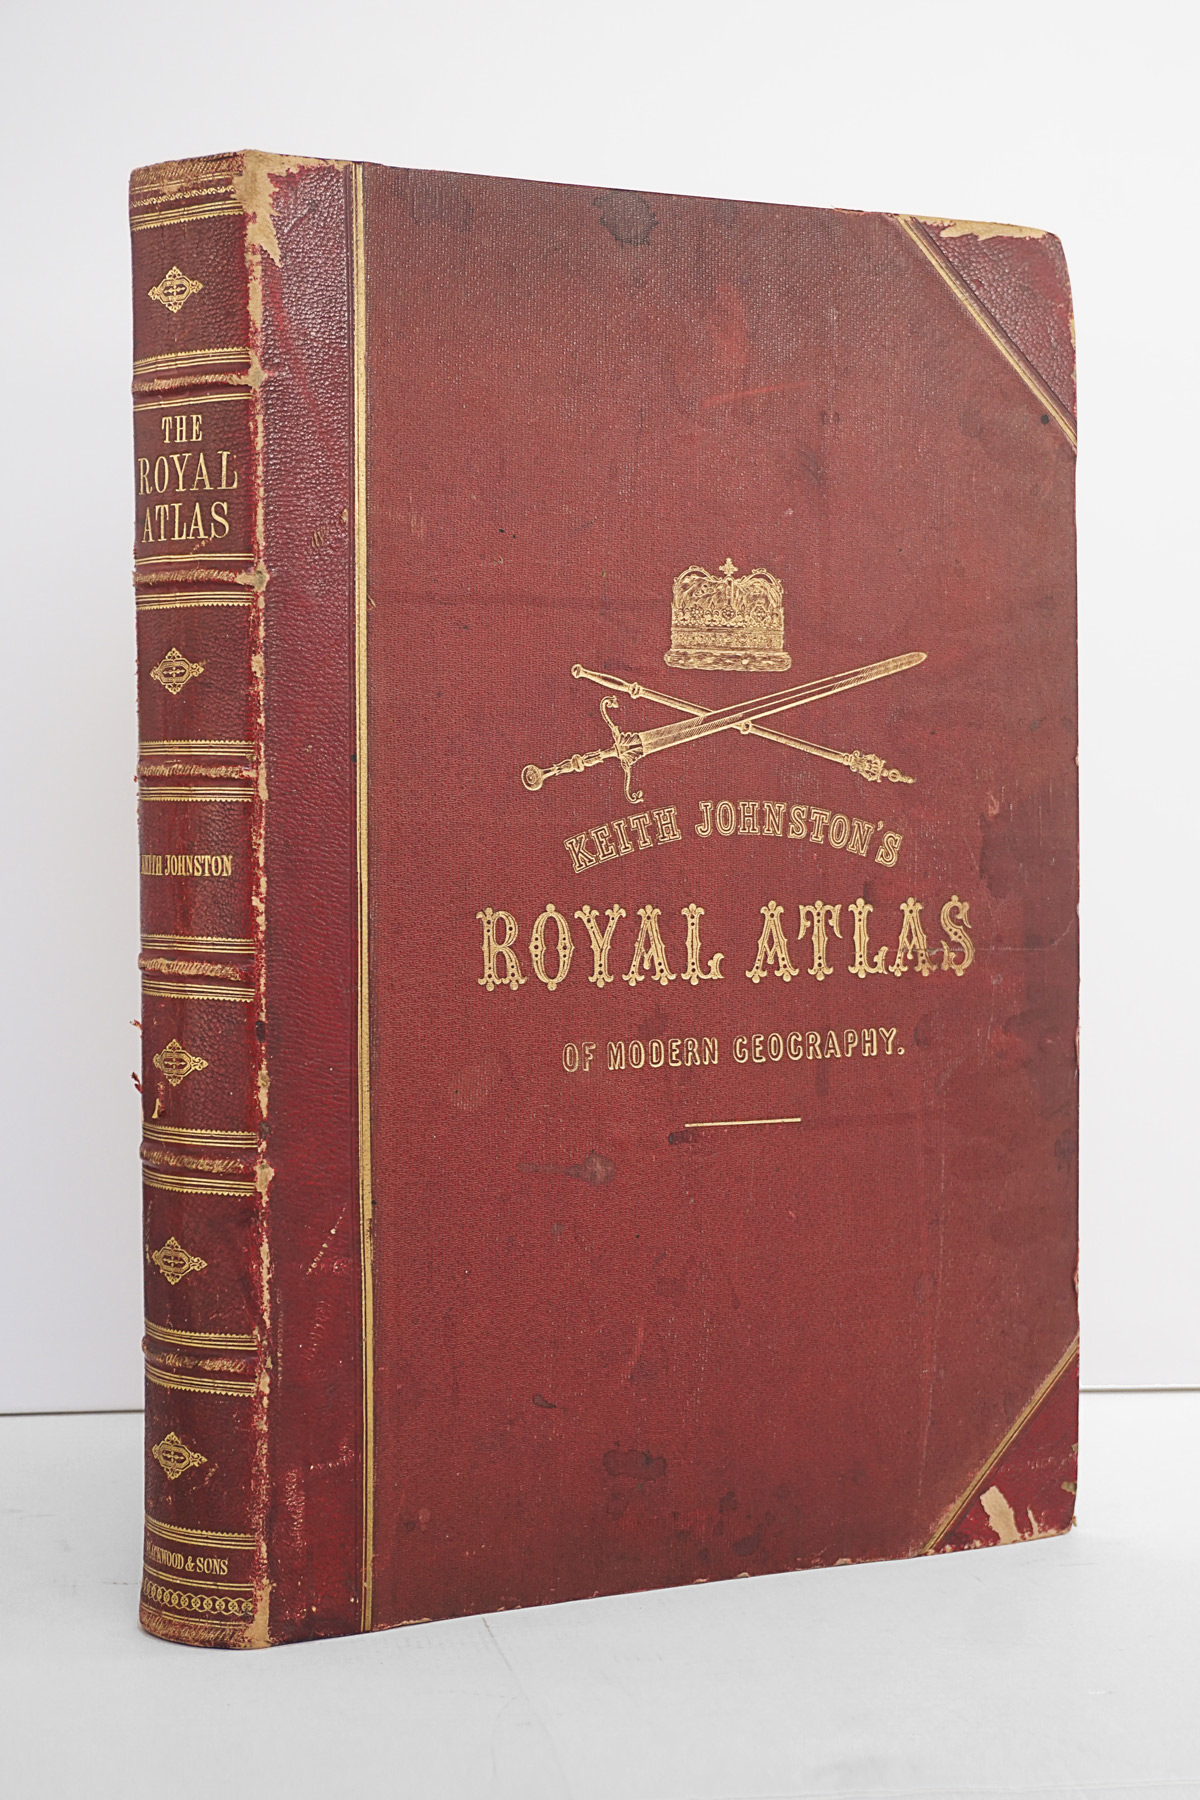 Royal Atlas of Modern Geography